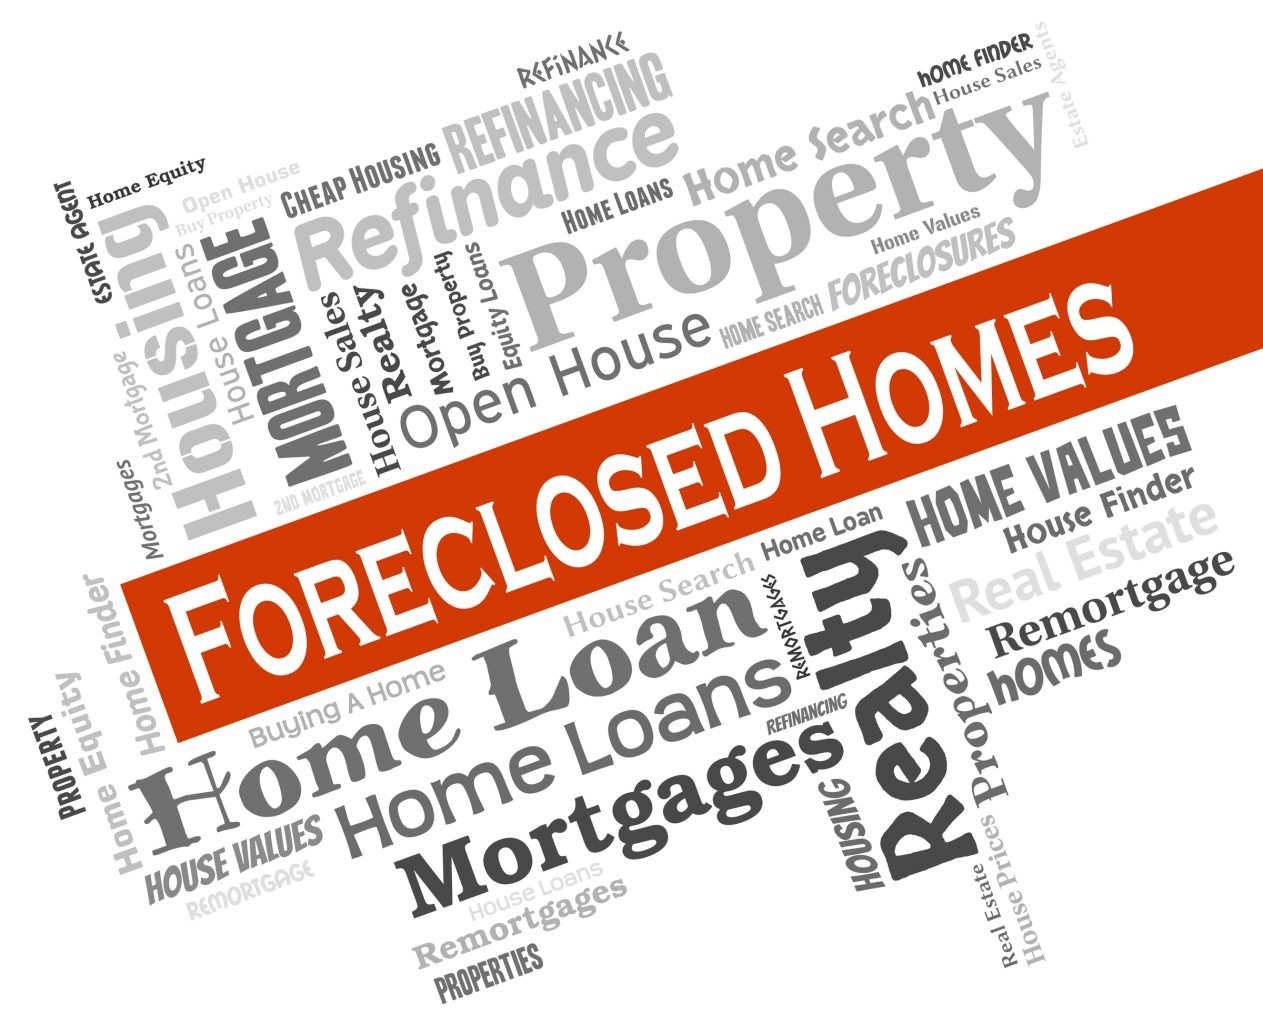 New Orleans West Bank Foreclosures